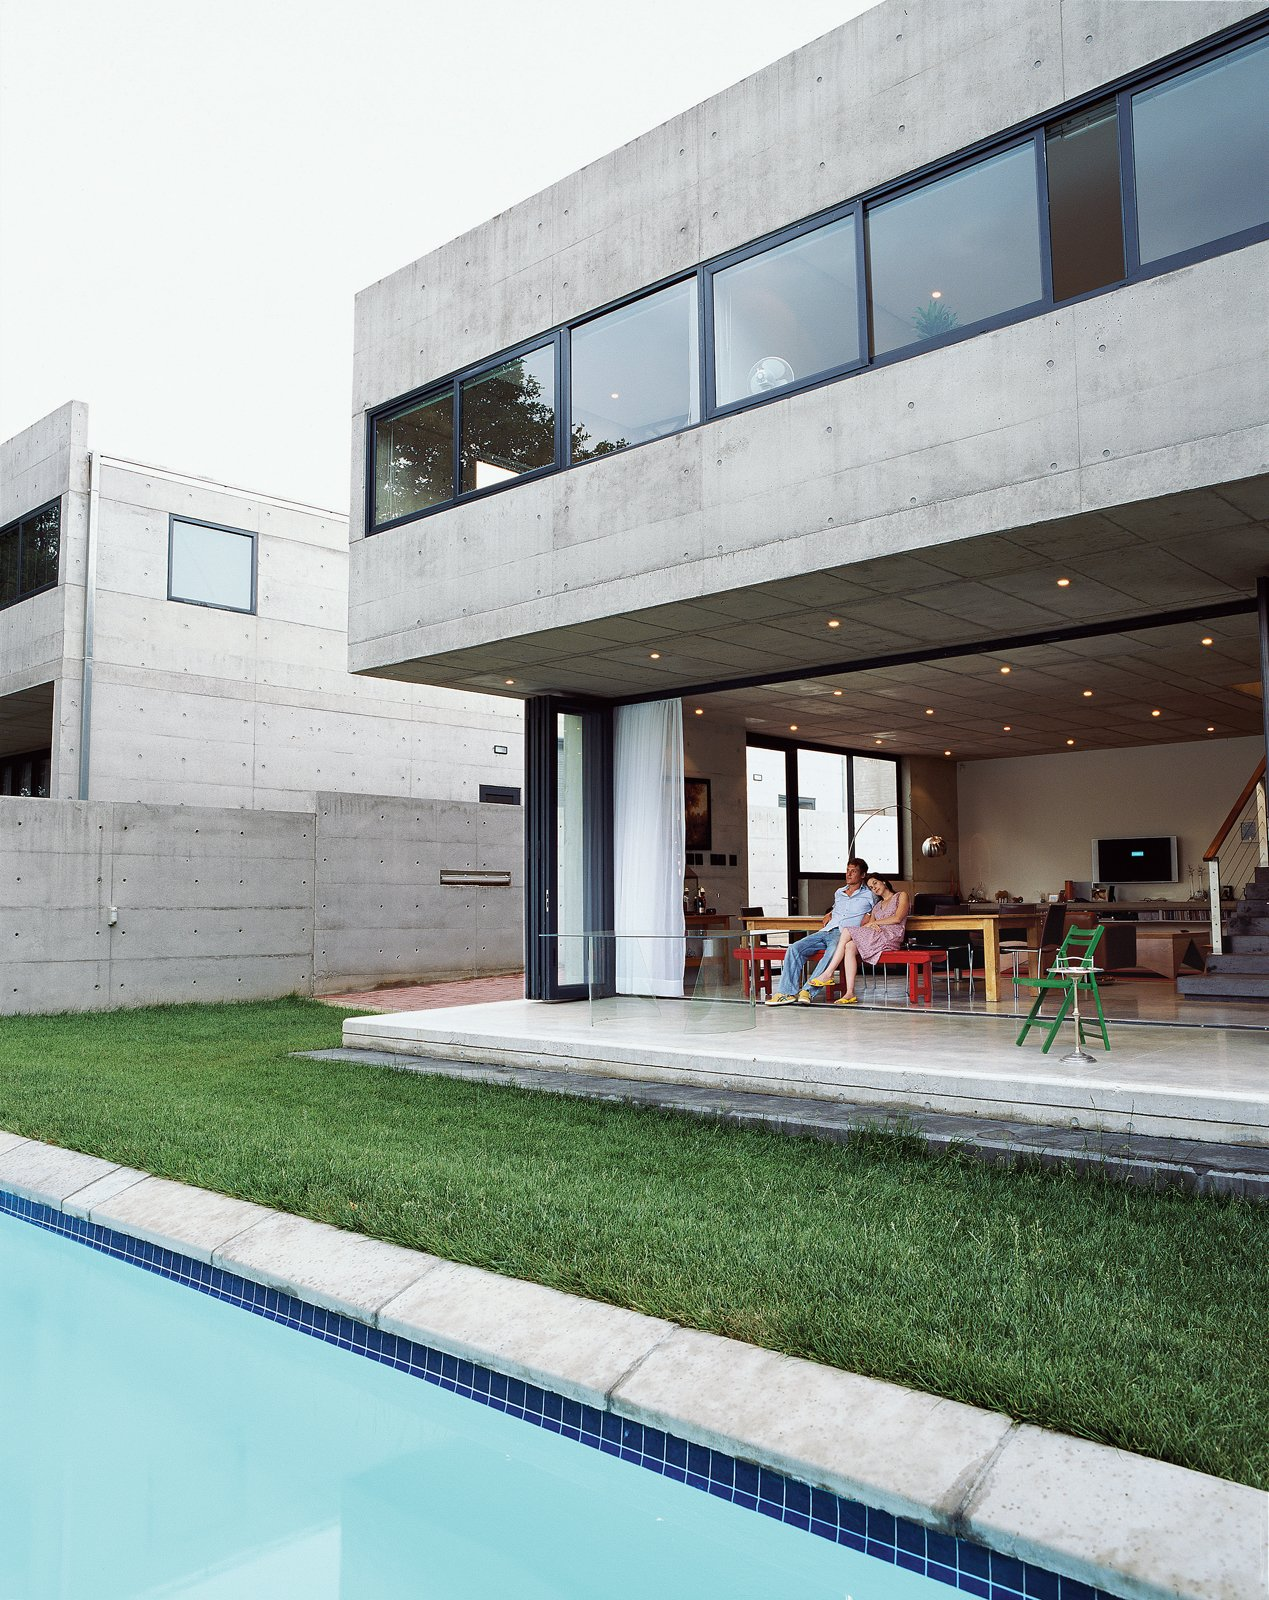 Concrete, Outdoor, Grass, Large, Back Yard, Swimming, Concrete, and Concrete Gregory and Caryn Katz are dwarfed beneath the cantilevered concrete overhang, which houses the bedroom on the upper level. The stackable glass doors that run beneath allow the house to open completely to the yard and swimming pool, soften the severity of the concrete, and blur the boundary between indoors and out.  Best Outdoor Concrete Photos from Katz's Cradle